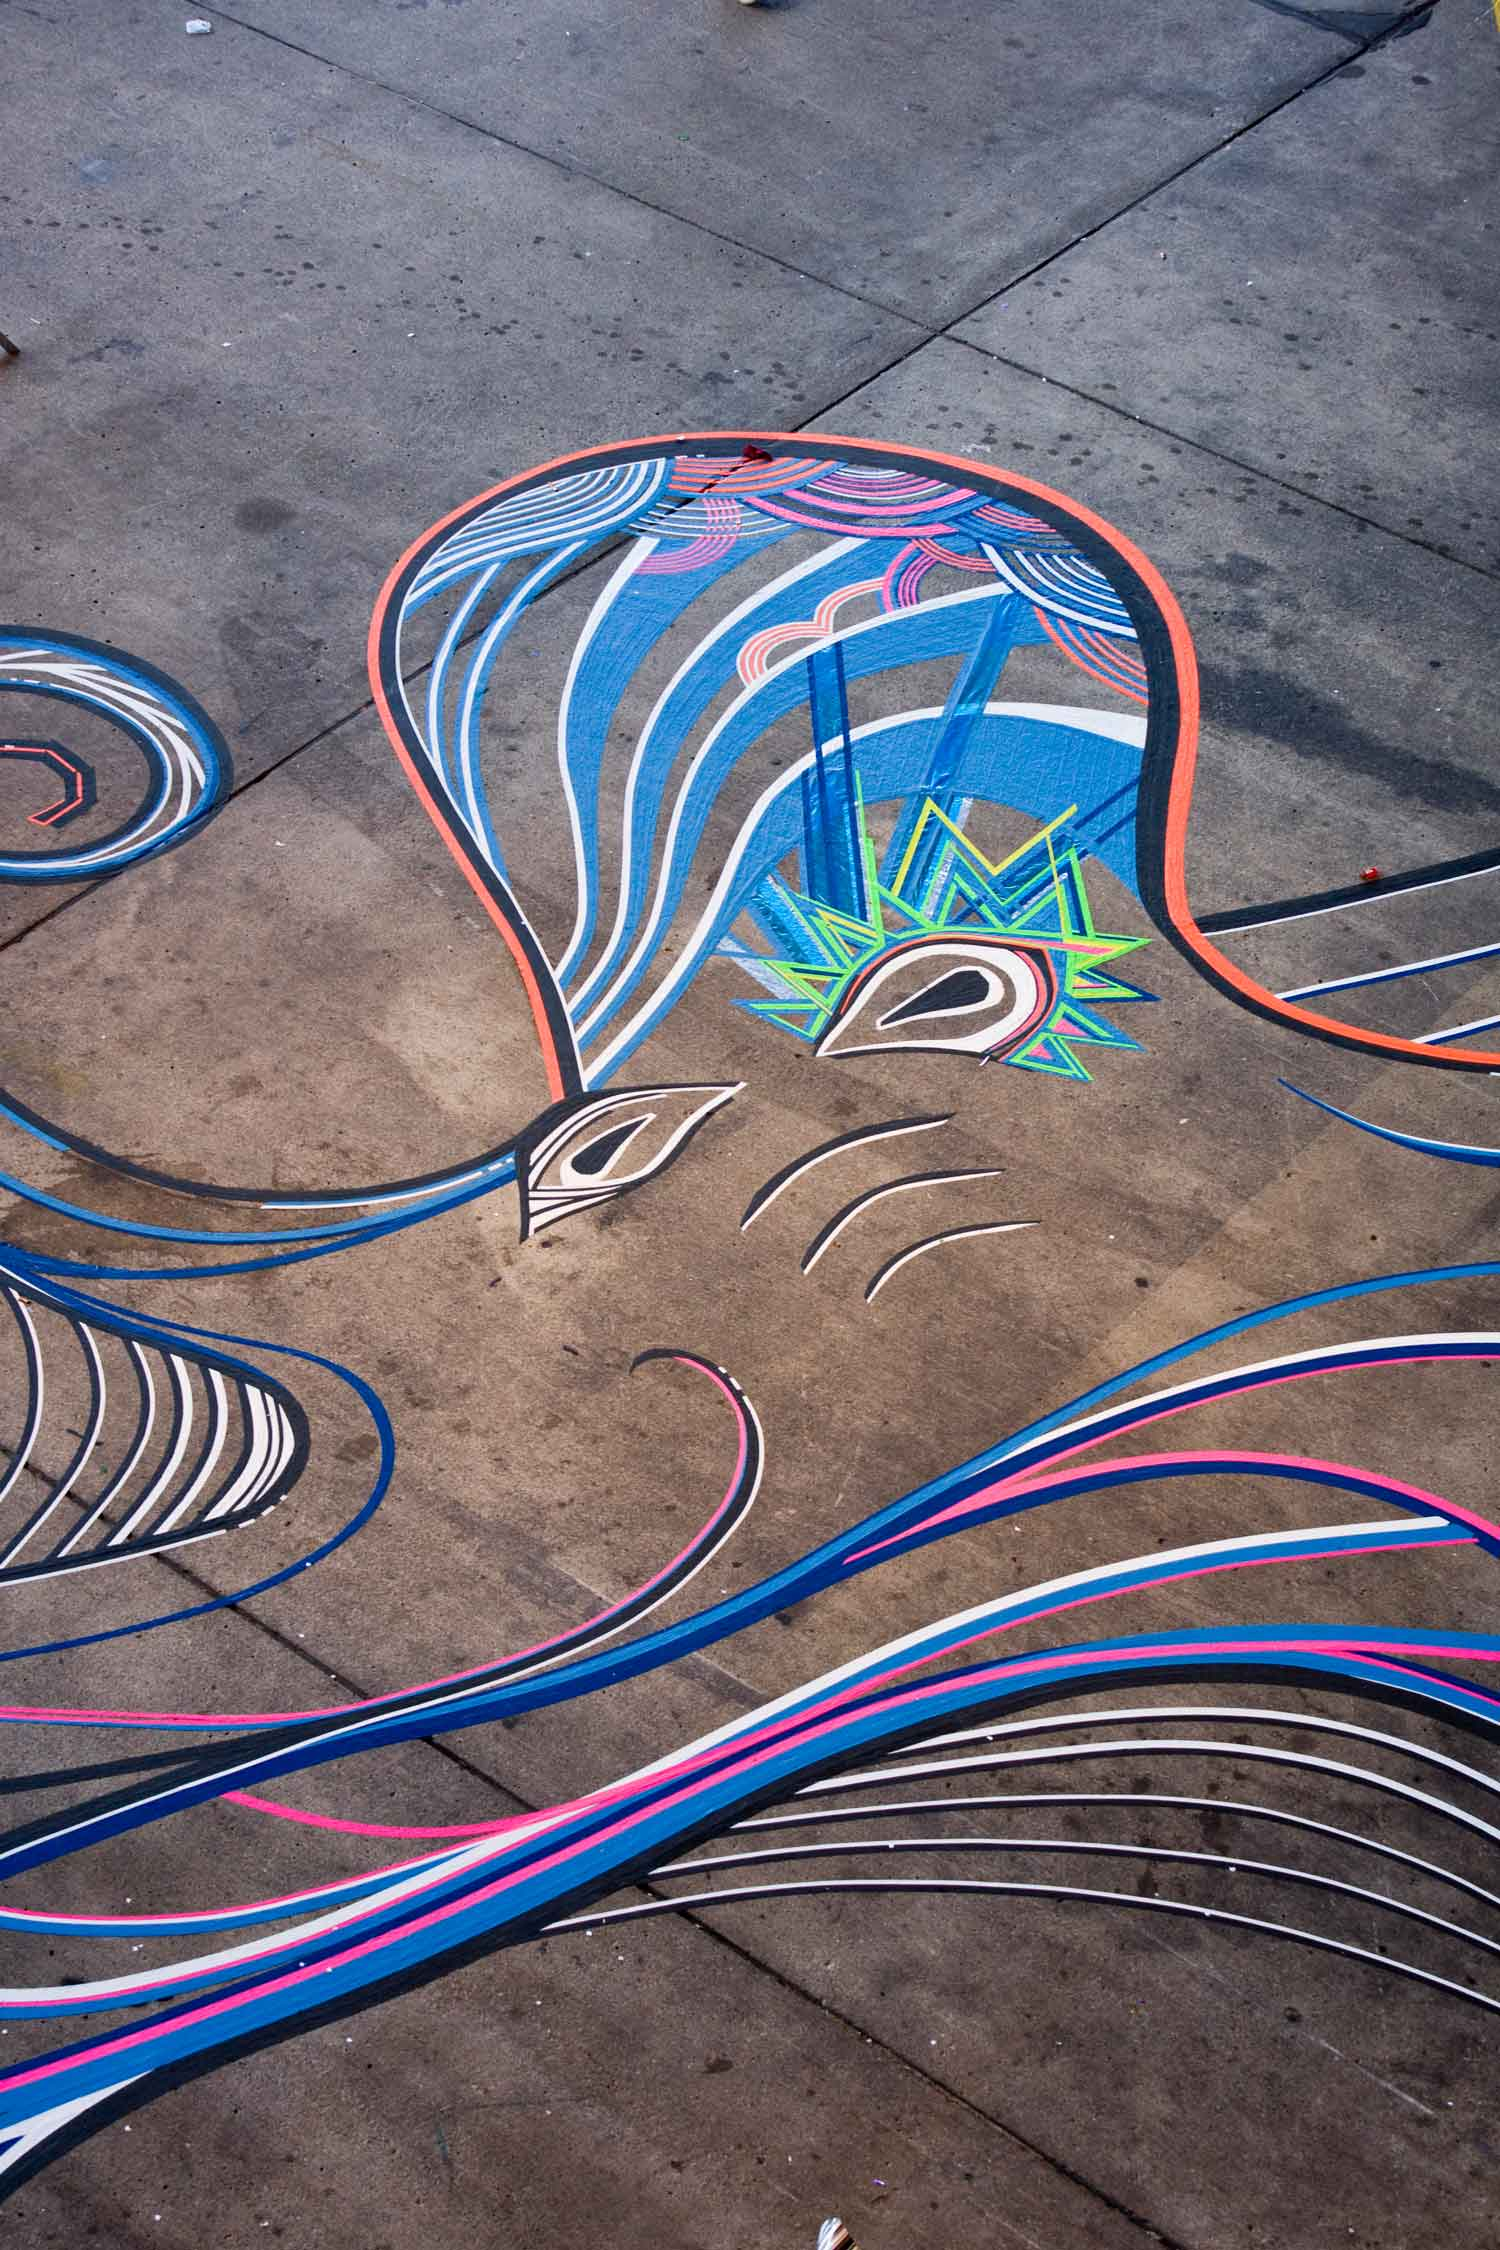 TAPE ART by TAPE OVER / Berlin Festival, Funky Octopus | Yellowtrace